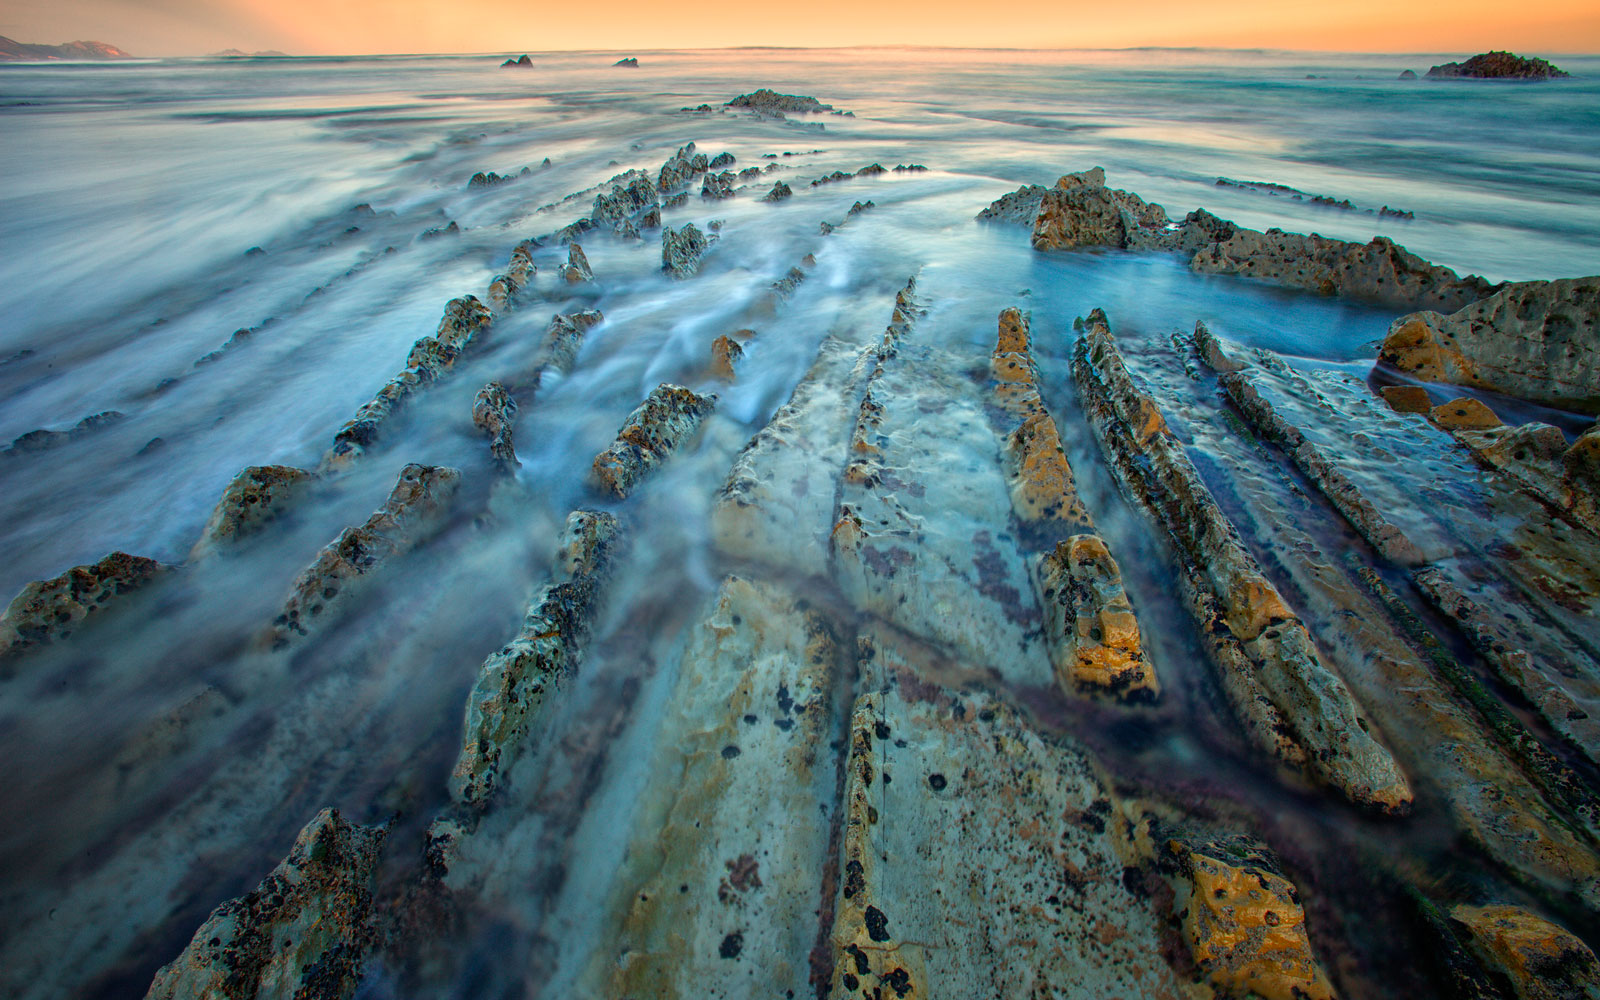 This other-worldly beach is perfect for Game of Thrones.